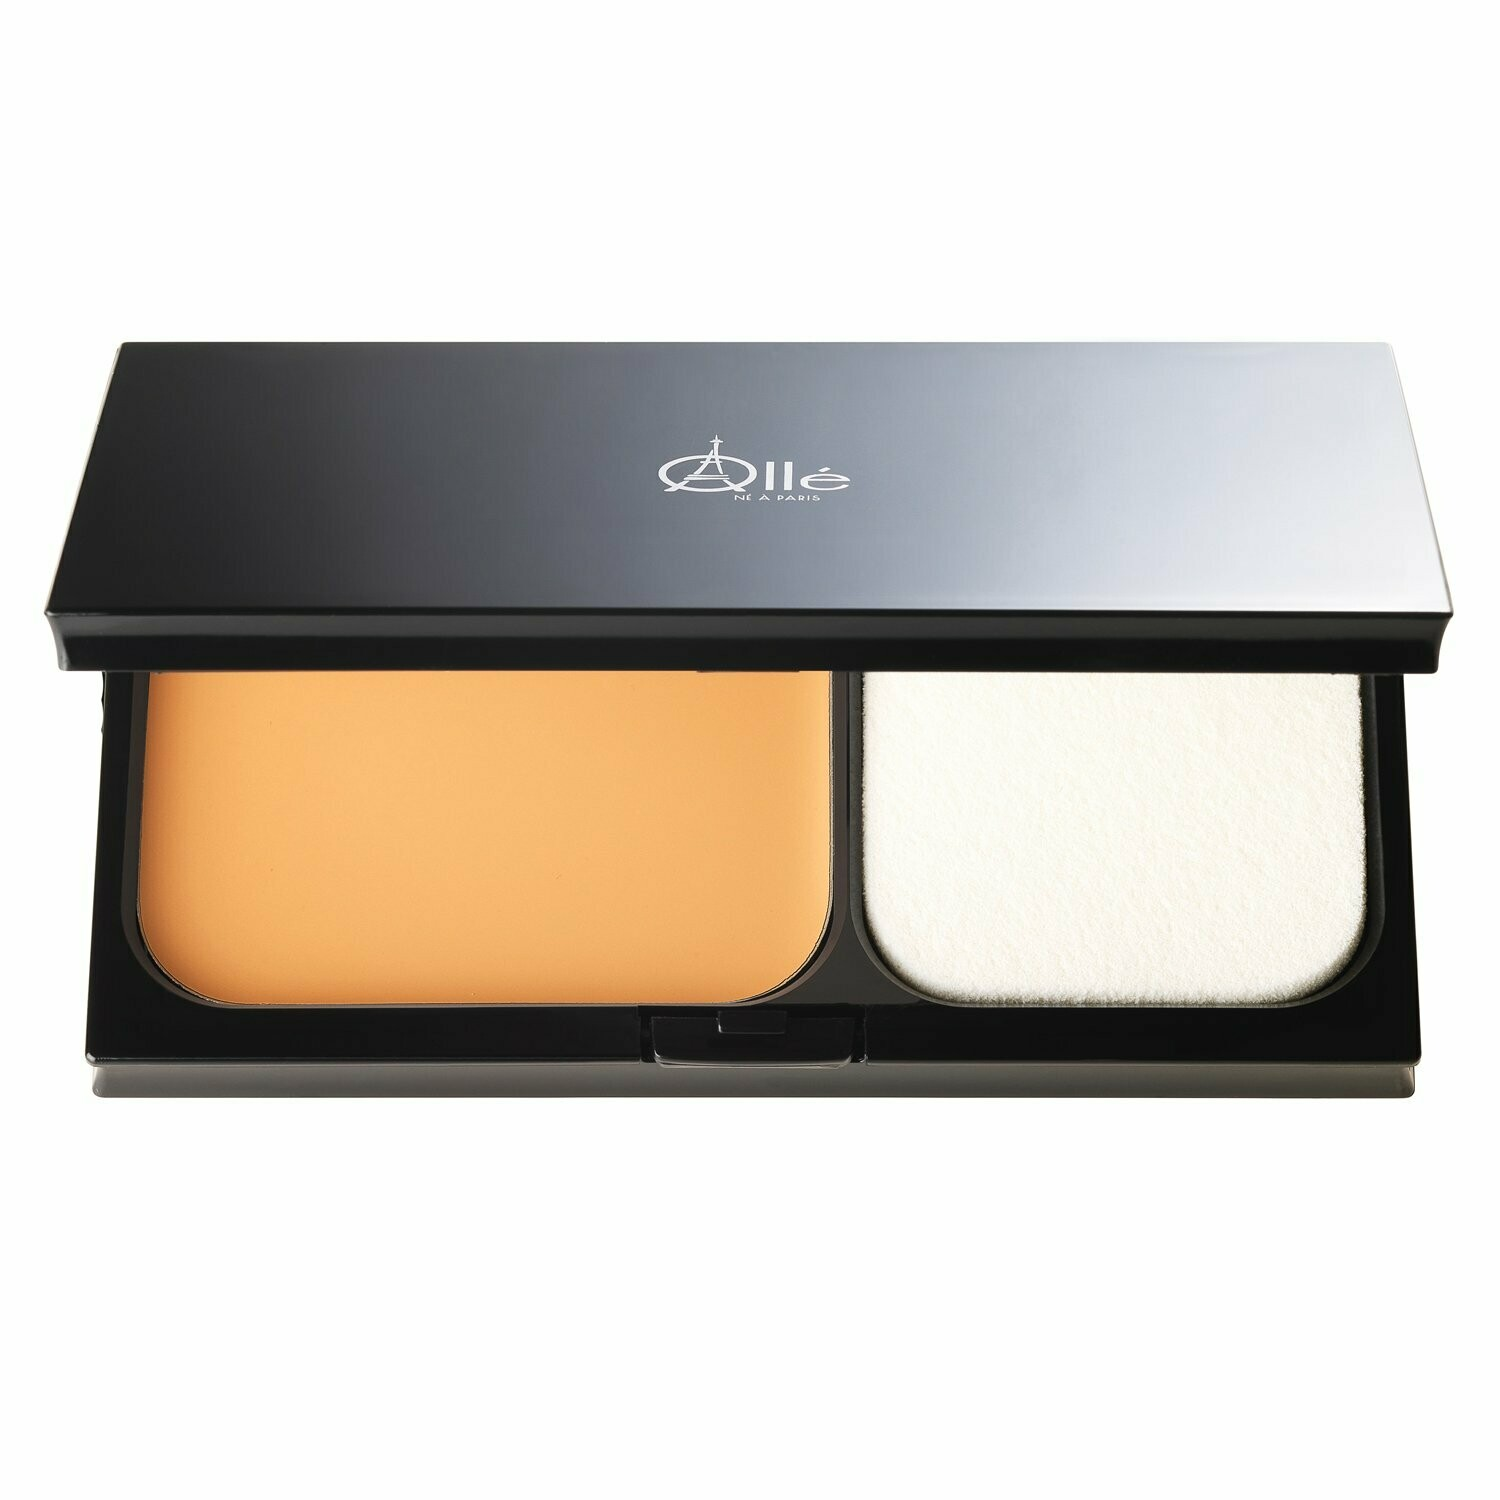 MAQUILLAGE COMPACT DOUBLE EFFET 012